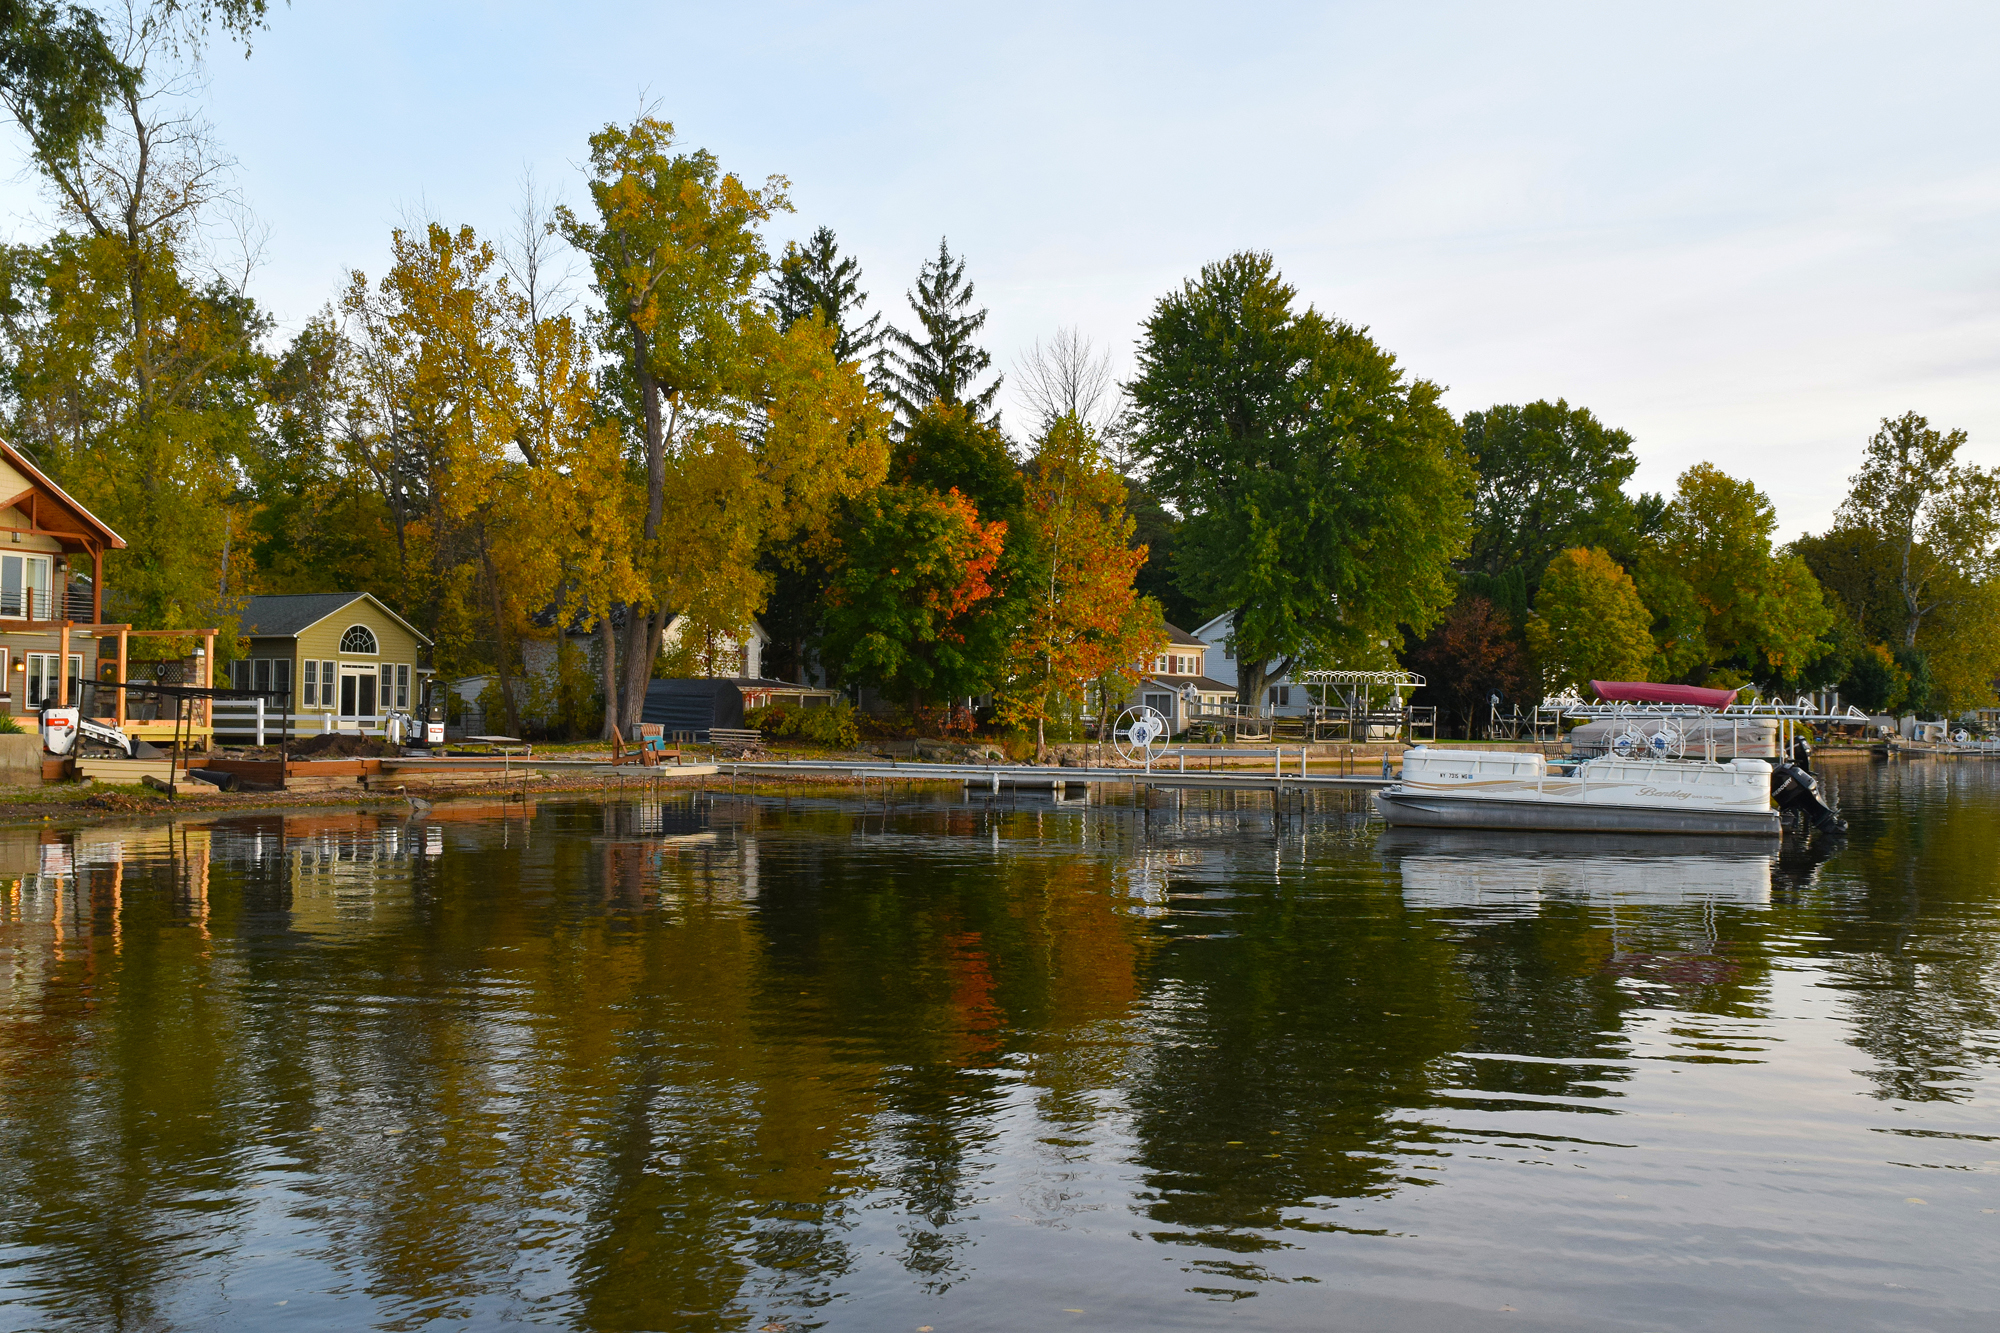 A few homes along the shore of Conesus Lake at the Boat Launch site. Looking south